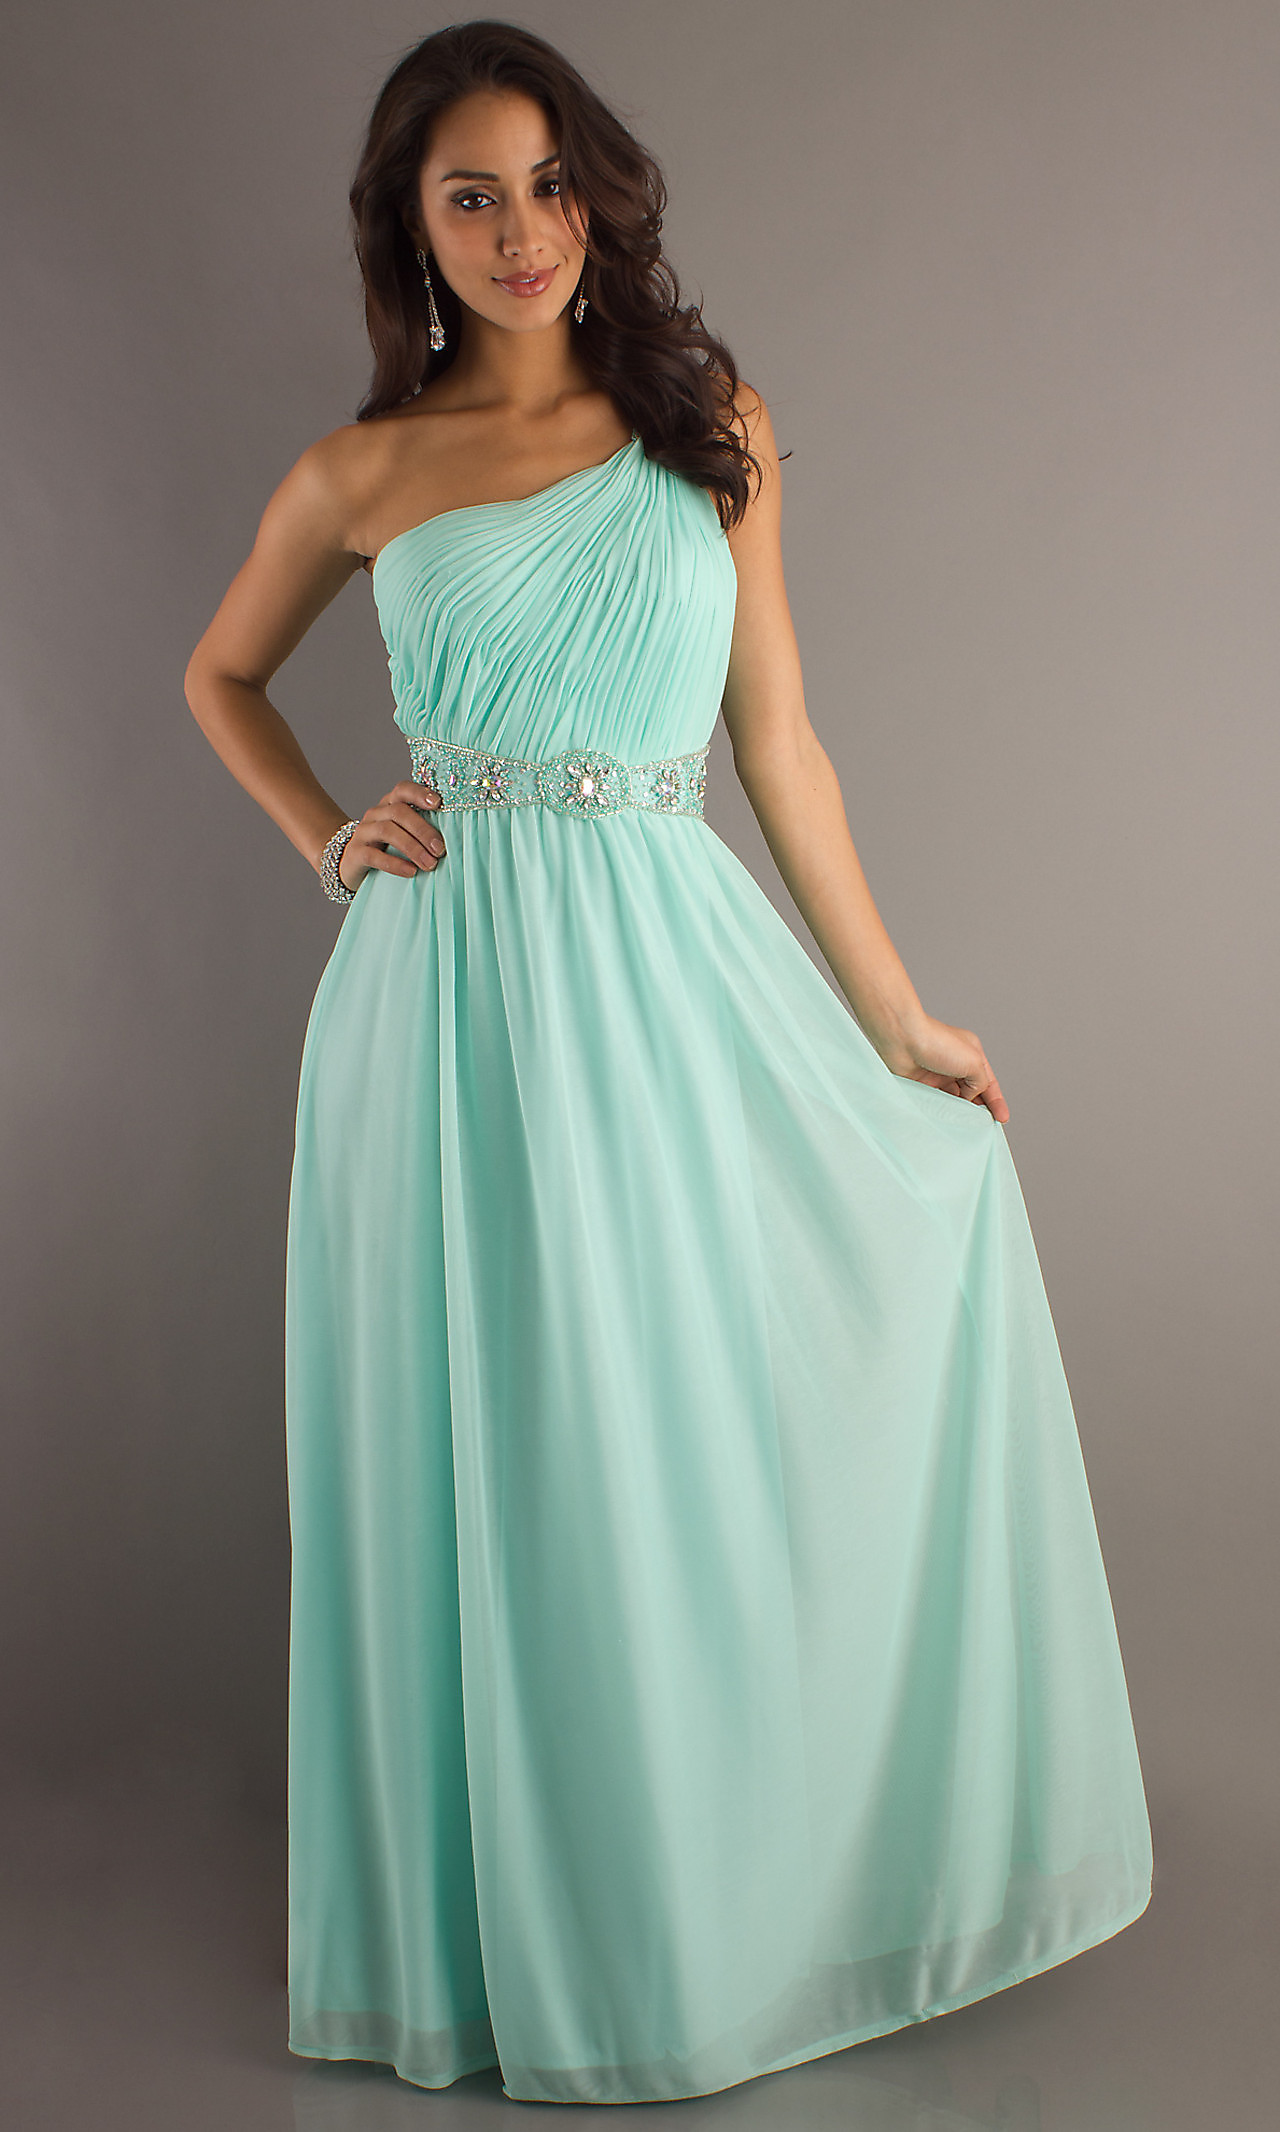 Attractive Prom Dresses For 11 Year Olds Uk Crest - All Wedding ...